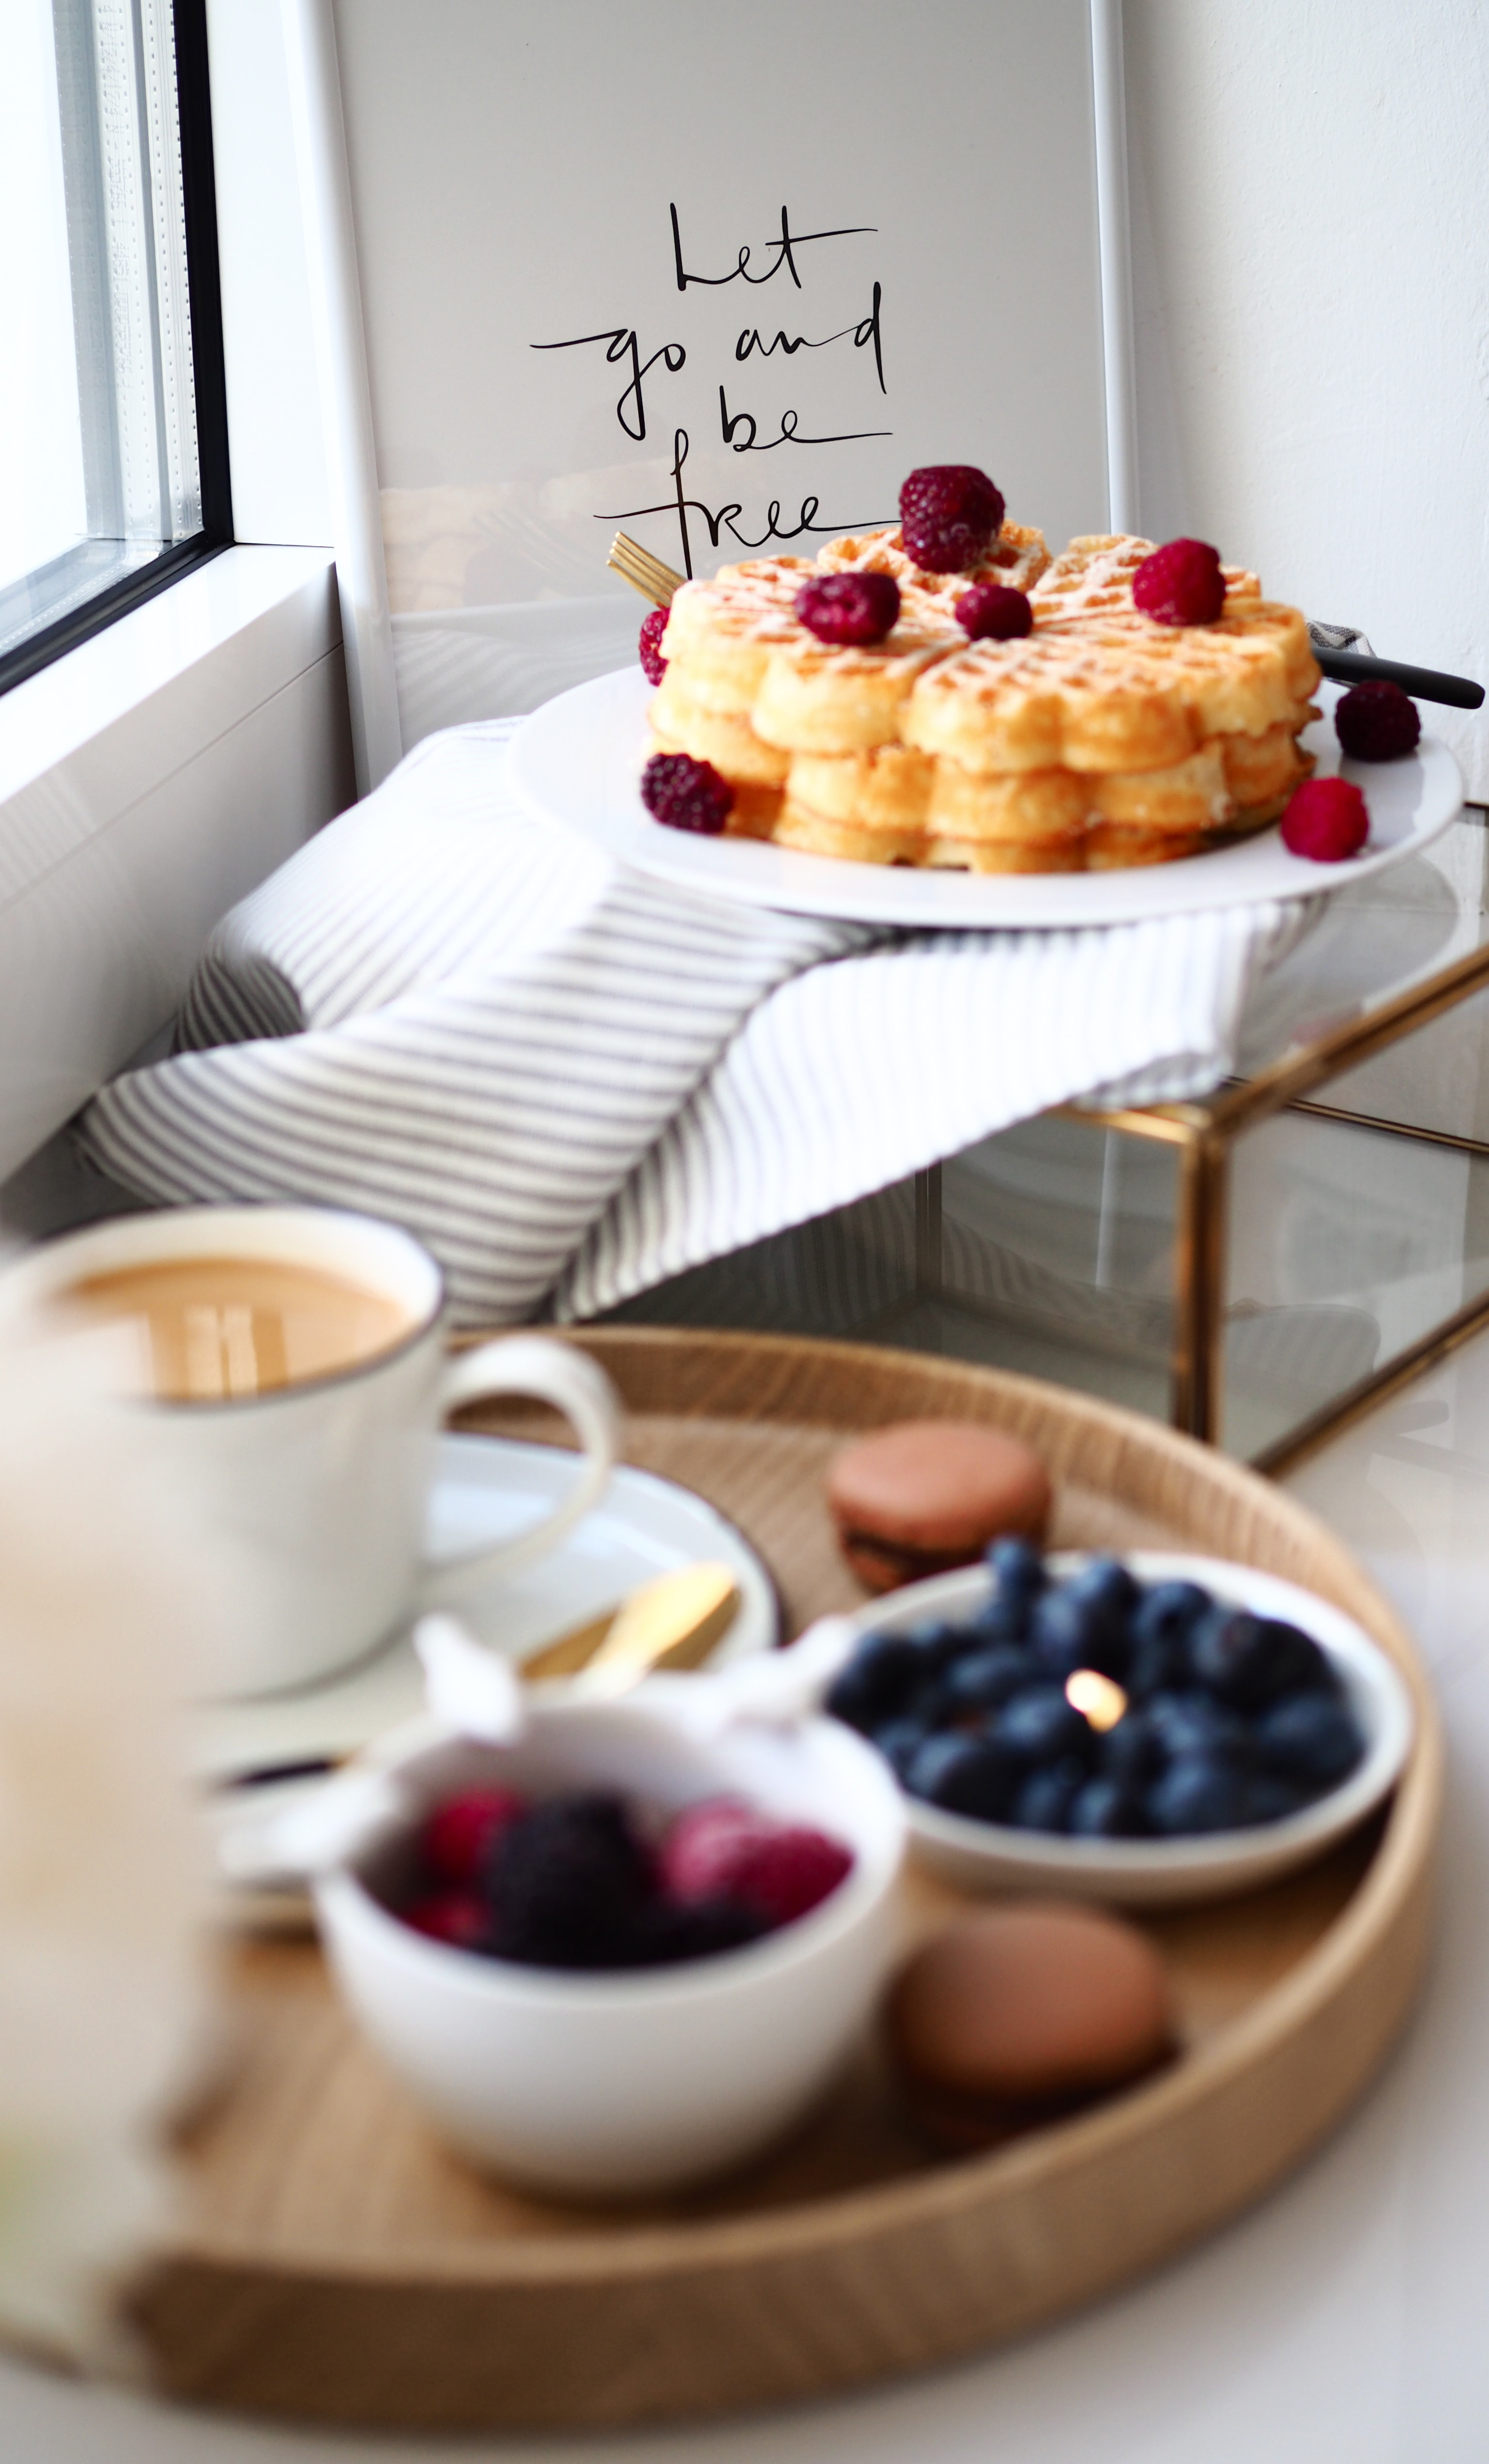 shallow focus photography of waffles with raspberries